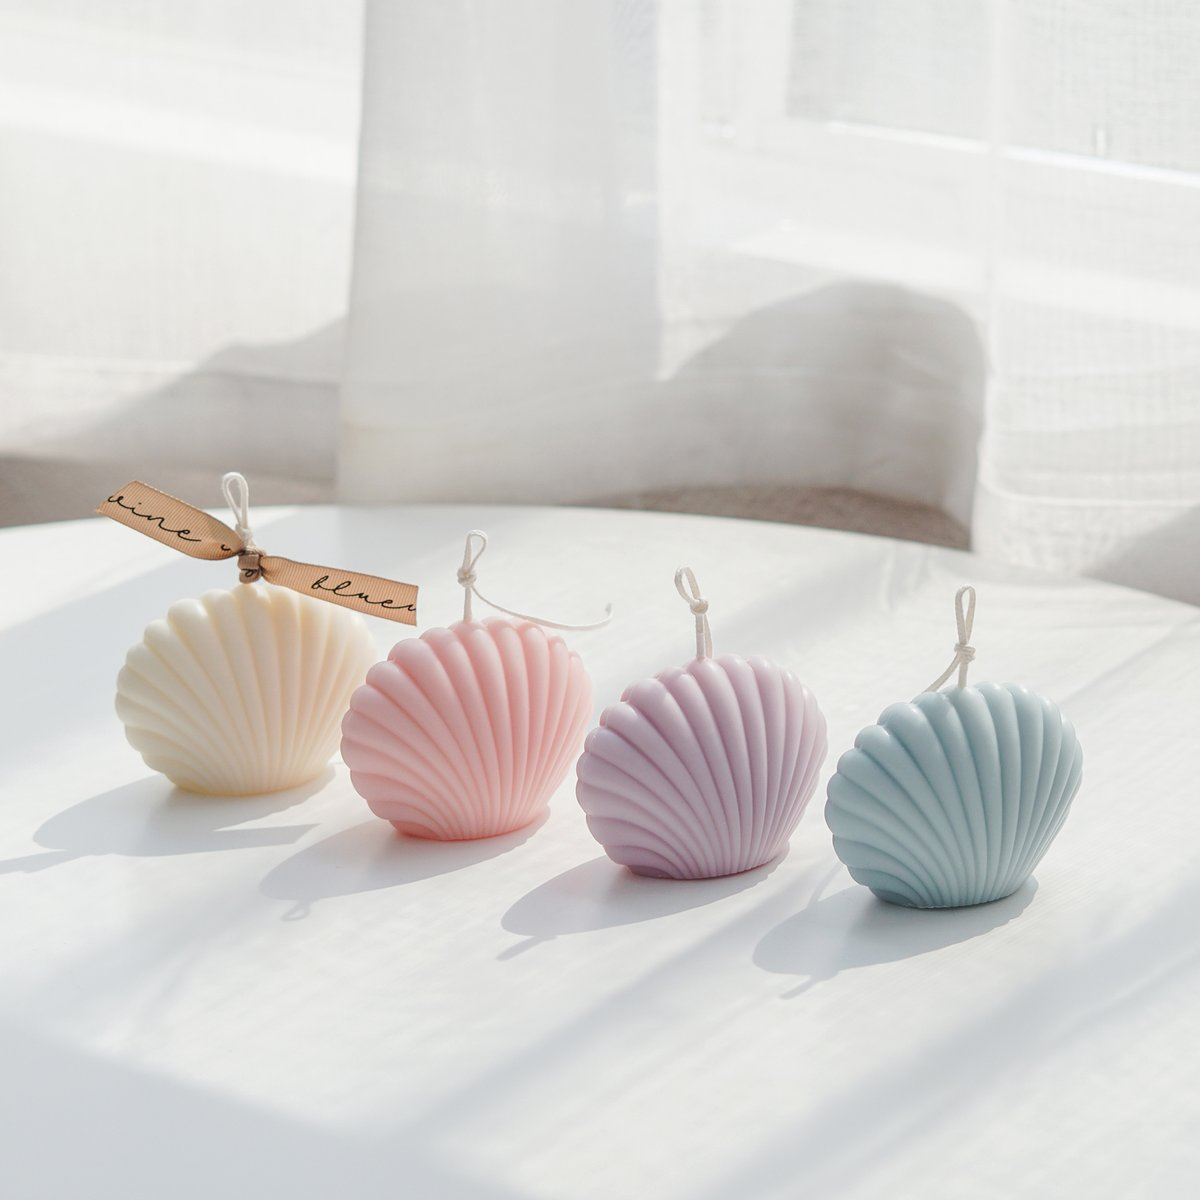 bluewine's summer collection of shell candles is now available onlinehttps://www.etsy.com/listing/838562163/seashell-candle-soy-wax-candle-seashell … . . . #soycandle #soywax #seashell #seashellcandle #homedecorpic.twitter.com/P5H19Uh0BR